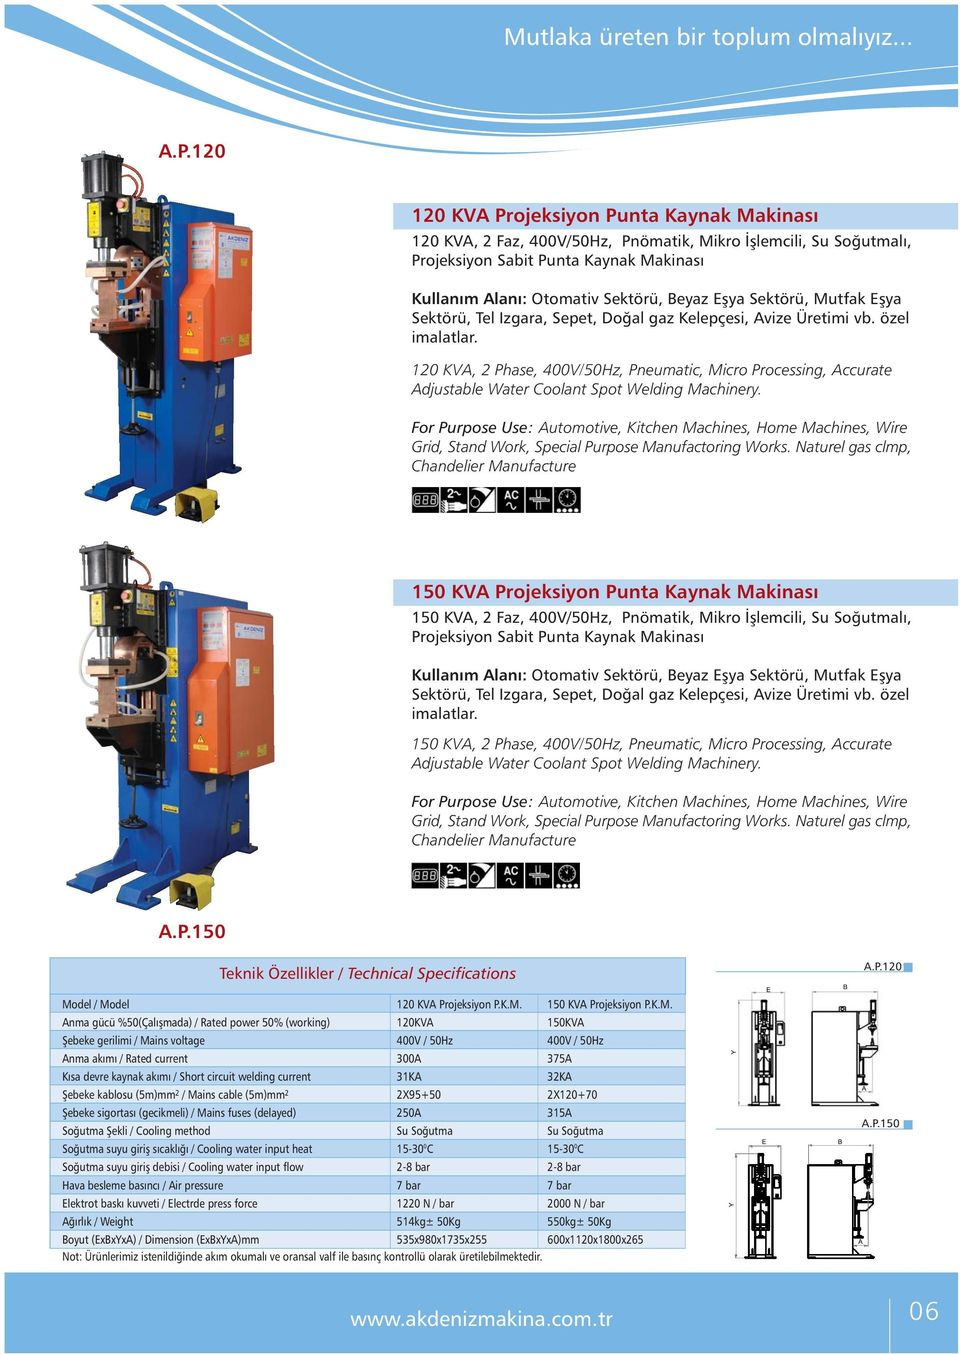 120 KVA, 2 Phase, 400V/50Hz, Pneumatic, Micro Processing, Accurate Adjustable Water Coolant Spot Welding Machinery. Grid, Stand Work, Special Purpose Manufactoring Works.